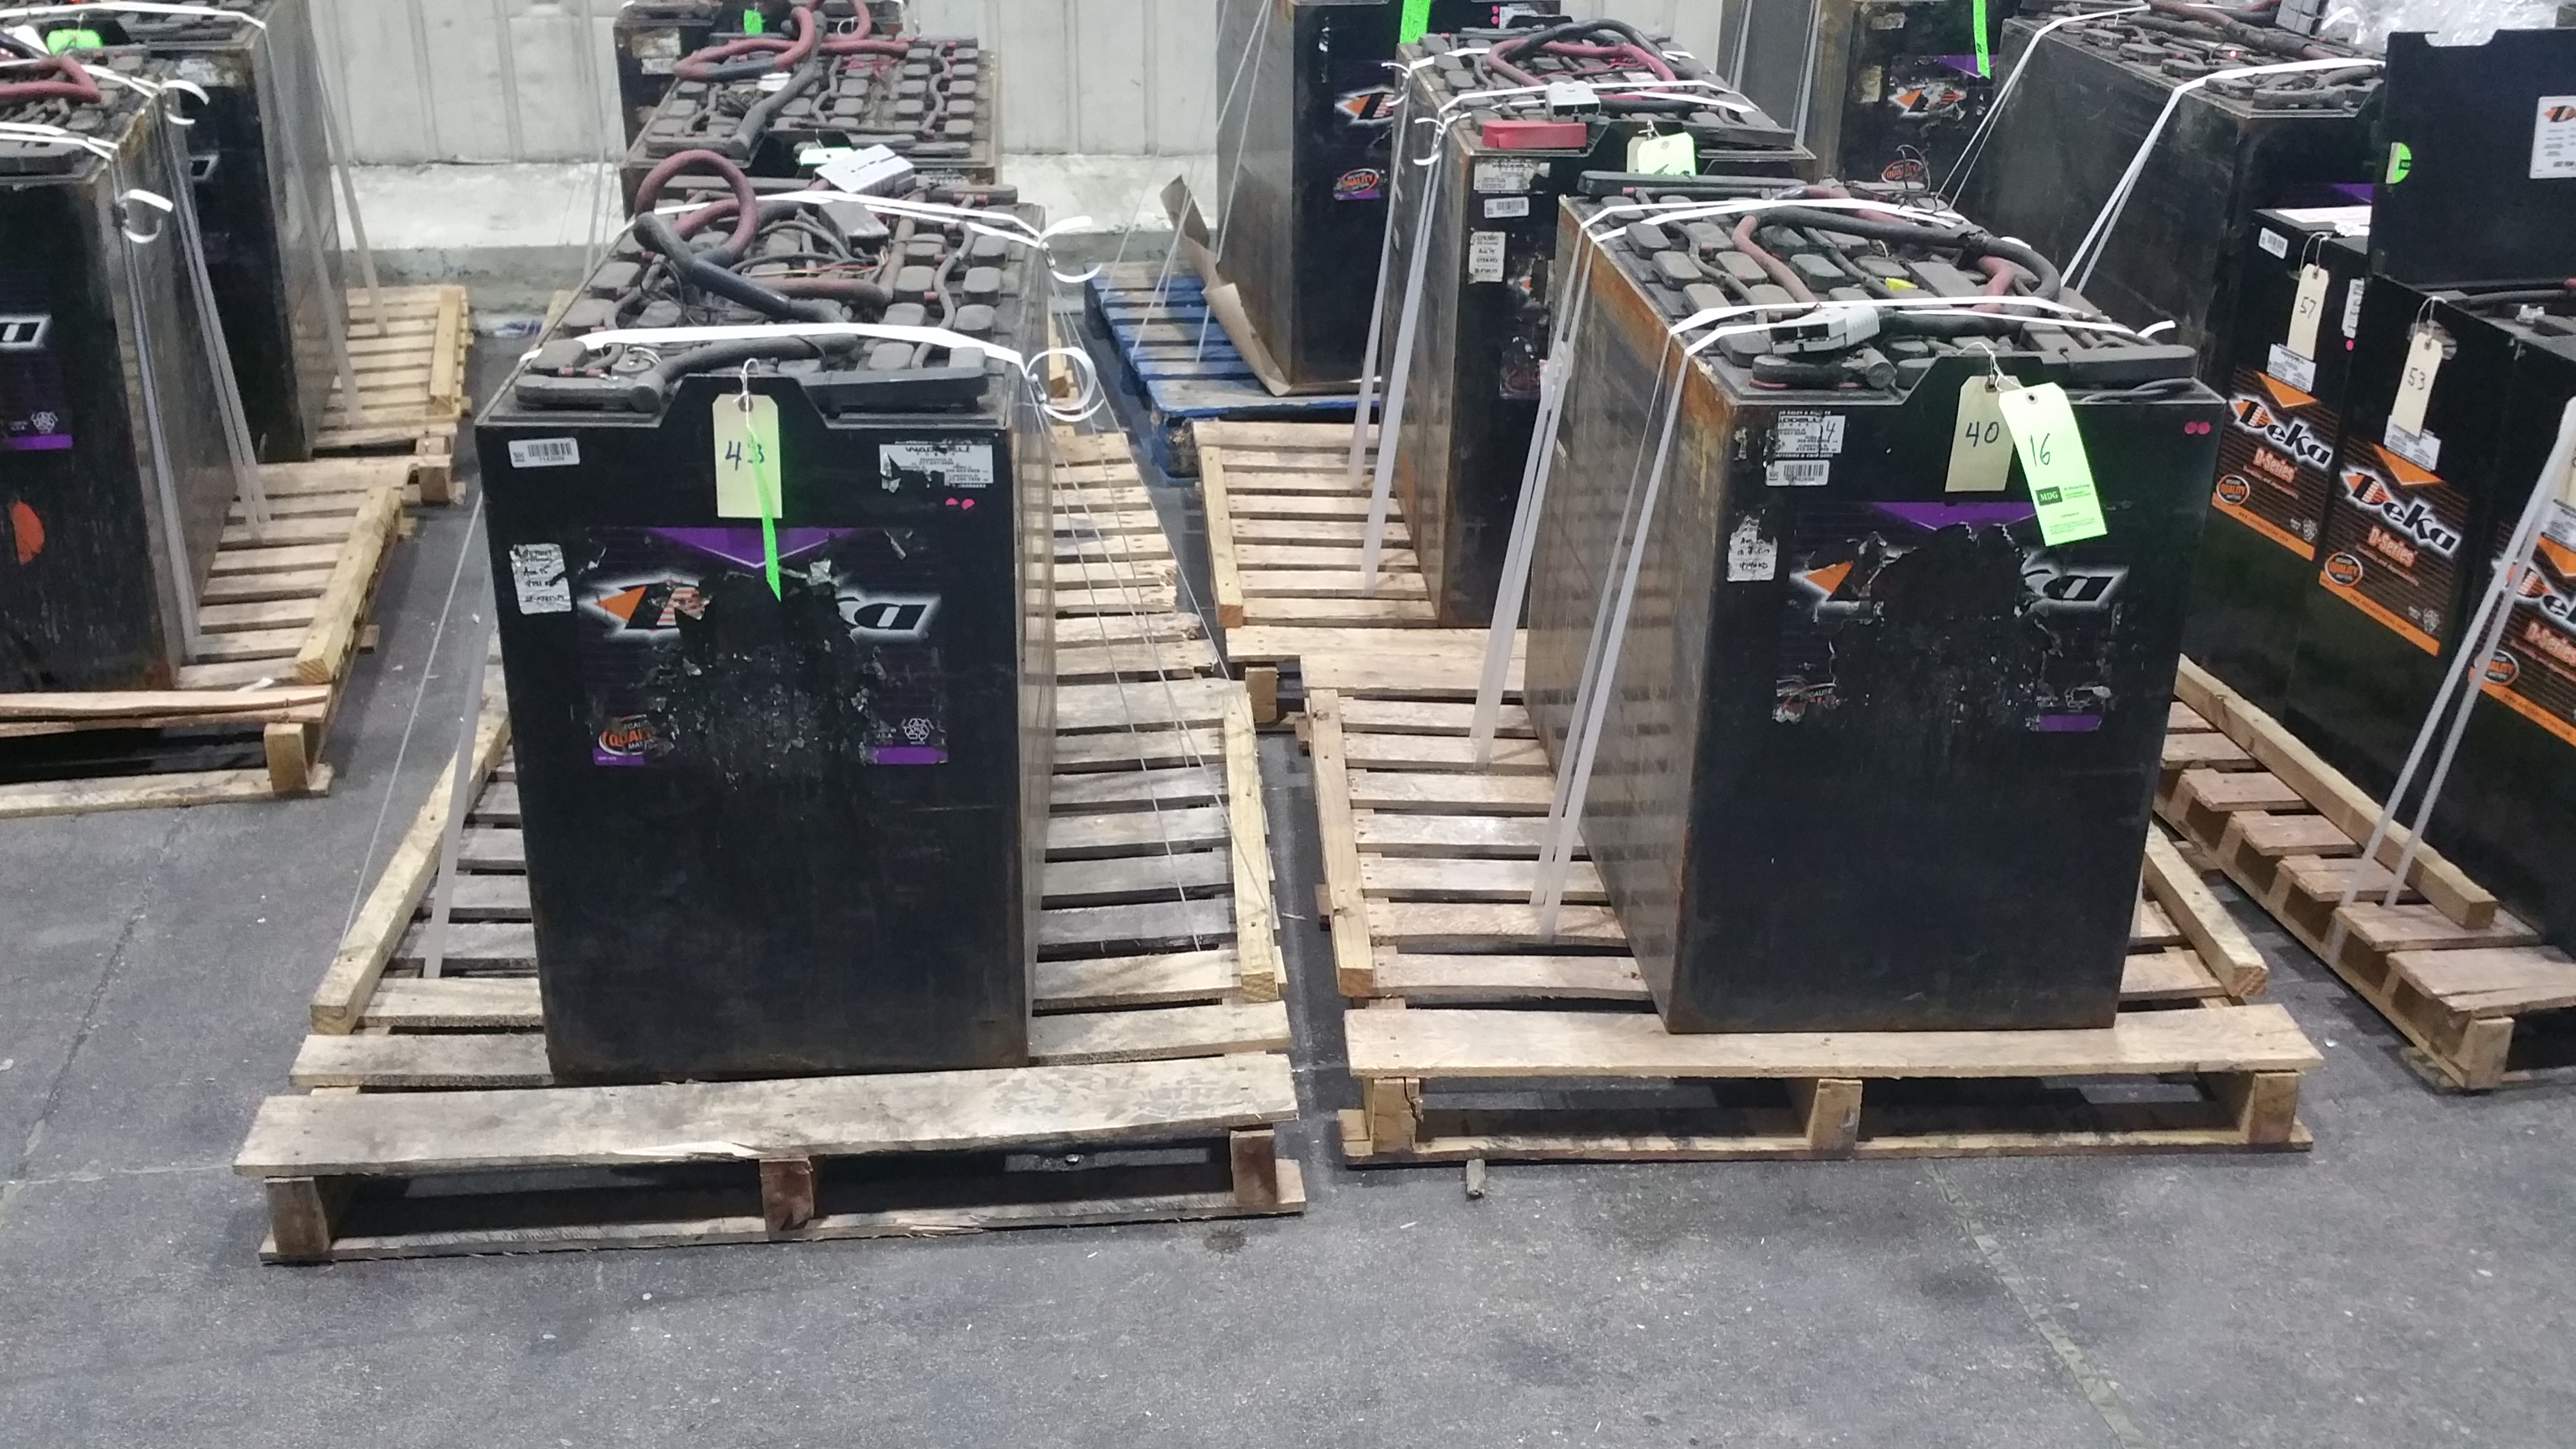 """Lot 41 - (2) Deka Fast Charge 36V Batteries, New in 2014 Used Less Than 6 Months, 20 1/16"""" x 38 ¼"""" x 30 7/1"""